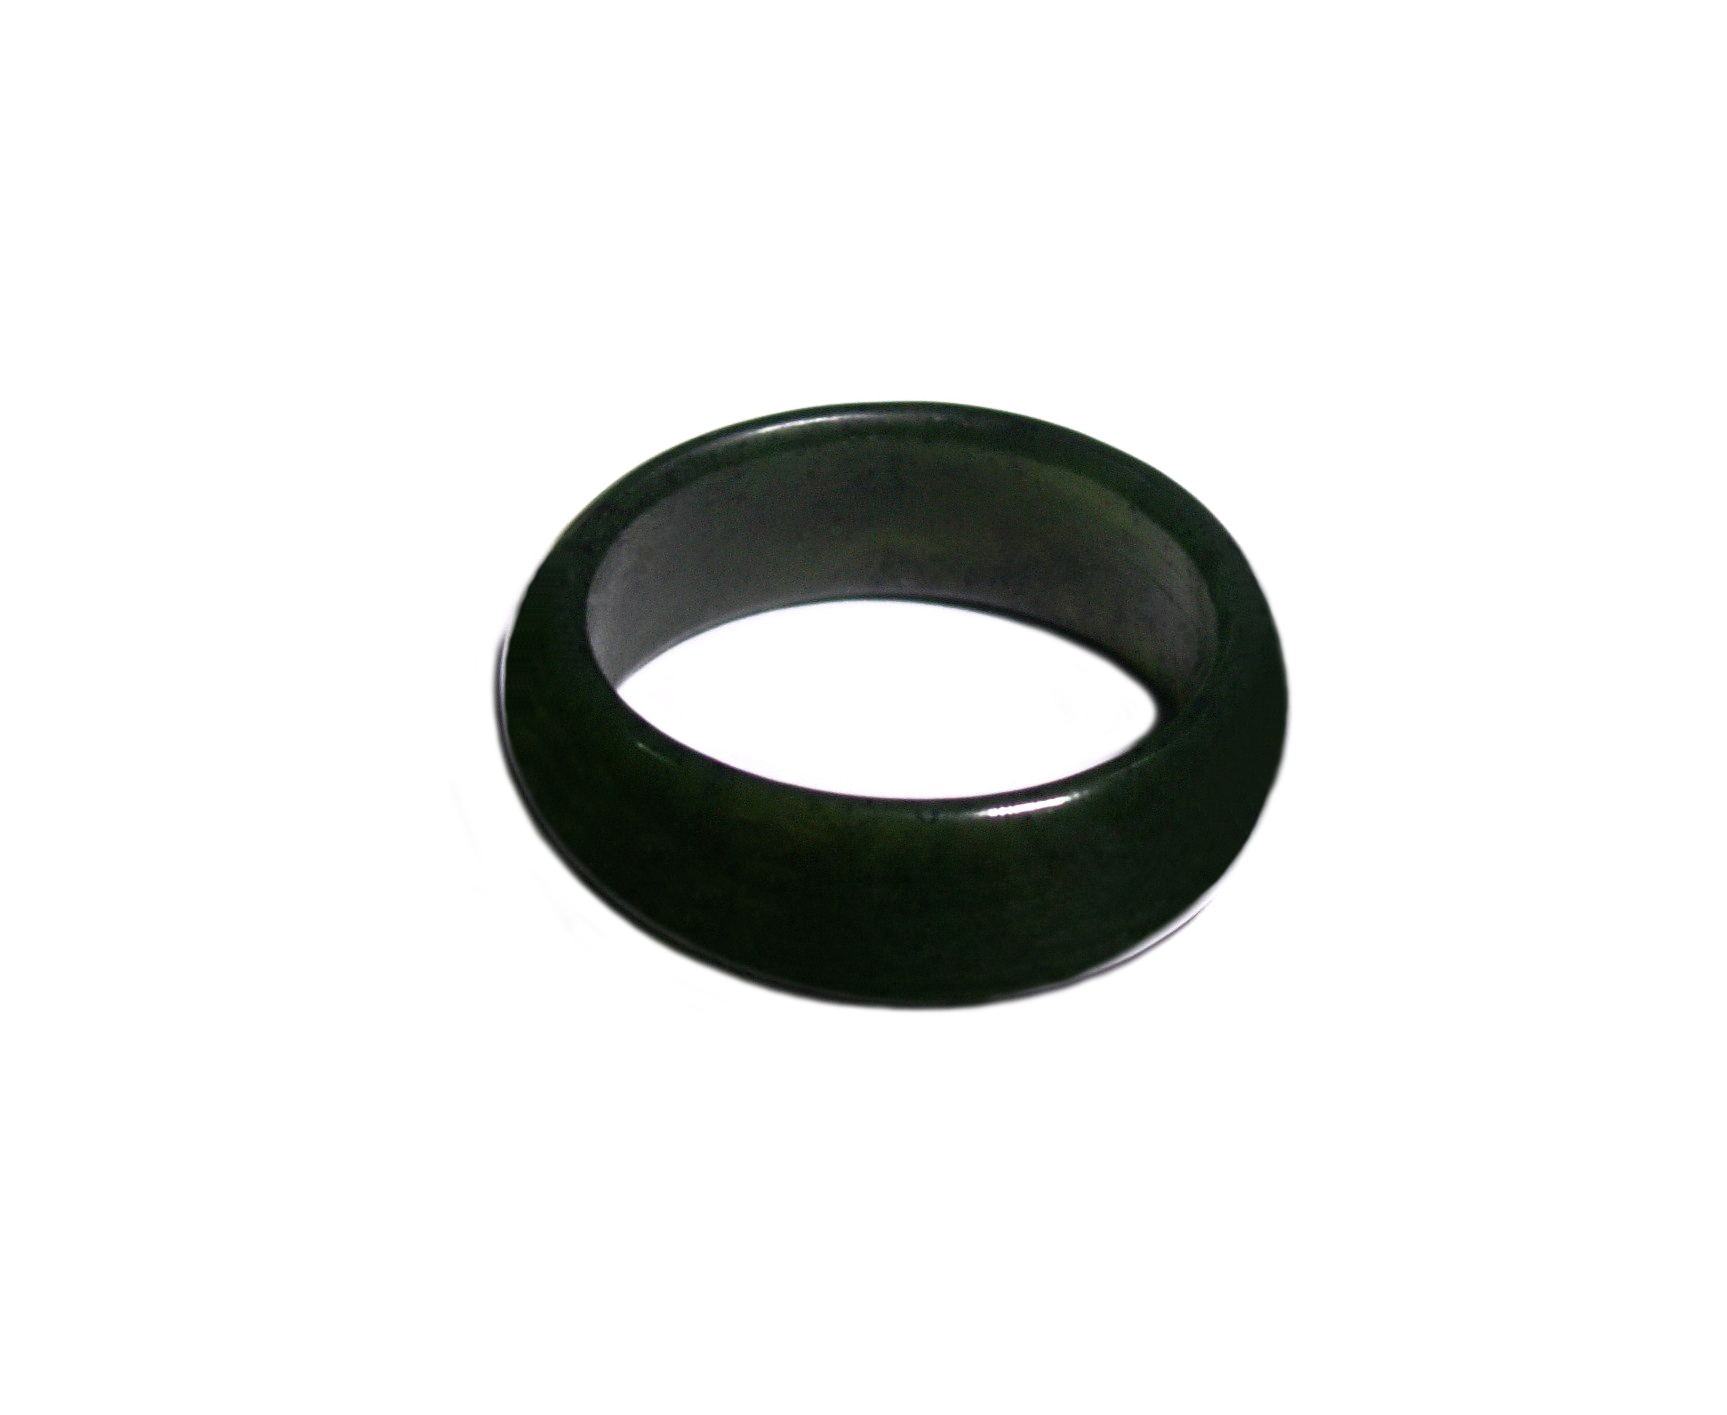 JADE 8MM WIDE BAND RING – SIZE US14(23.01mm)